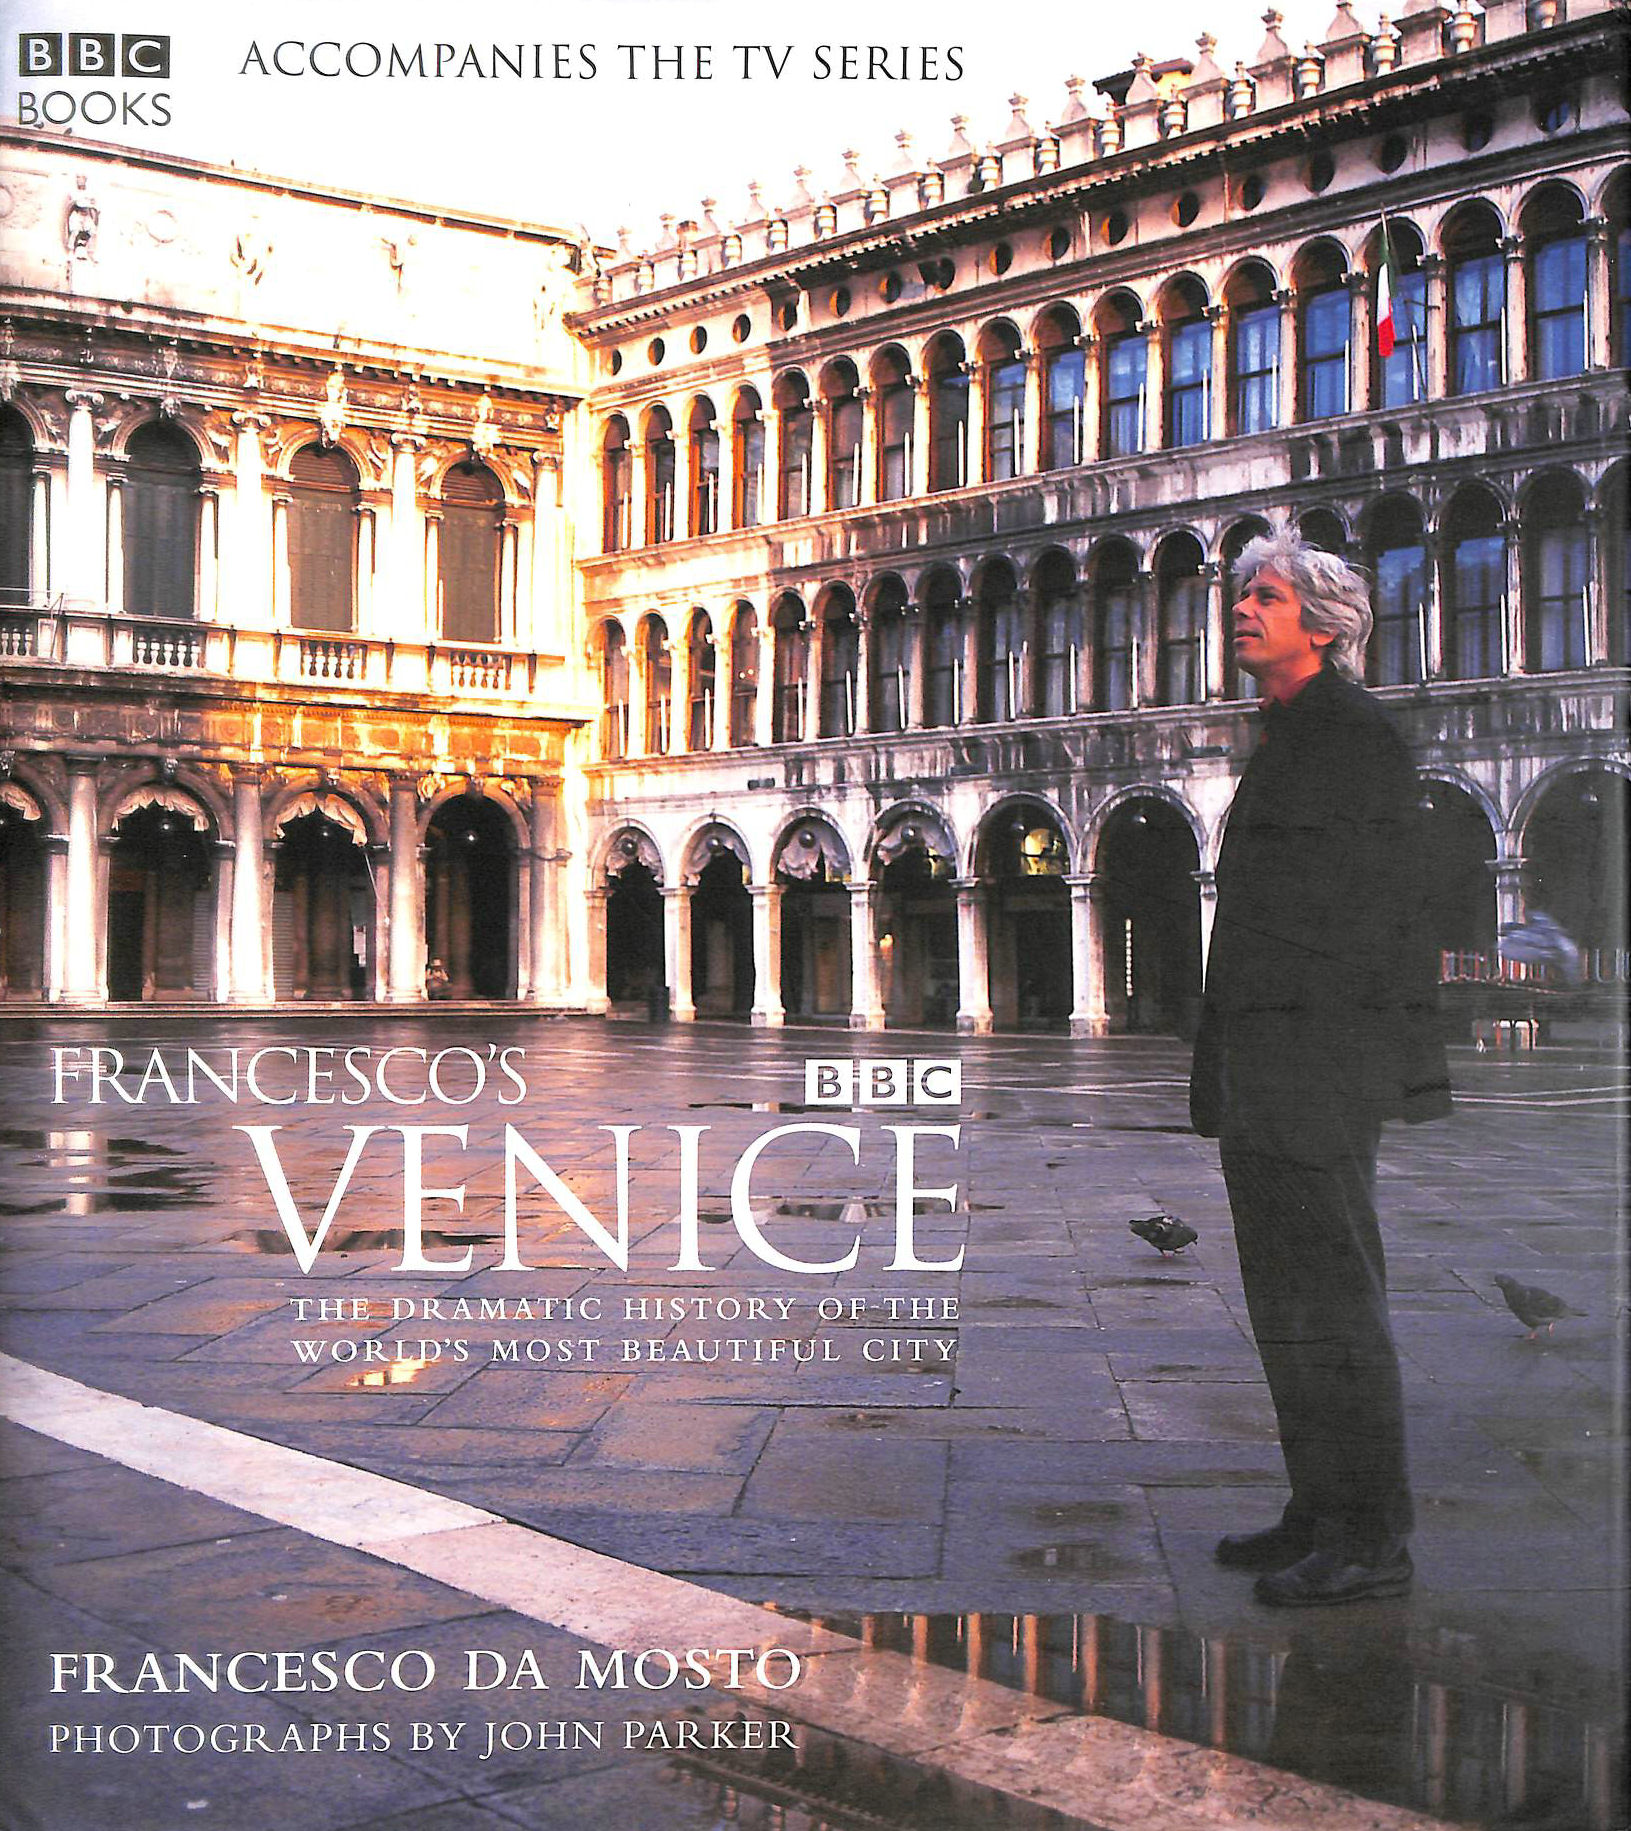 Image for Francesco's Venice: The Dramatic History of the World's most Beautiful City